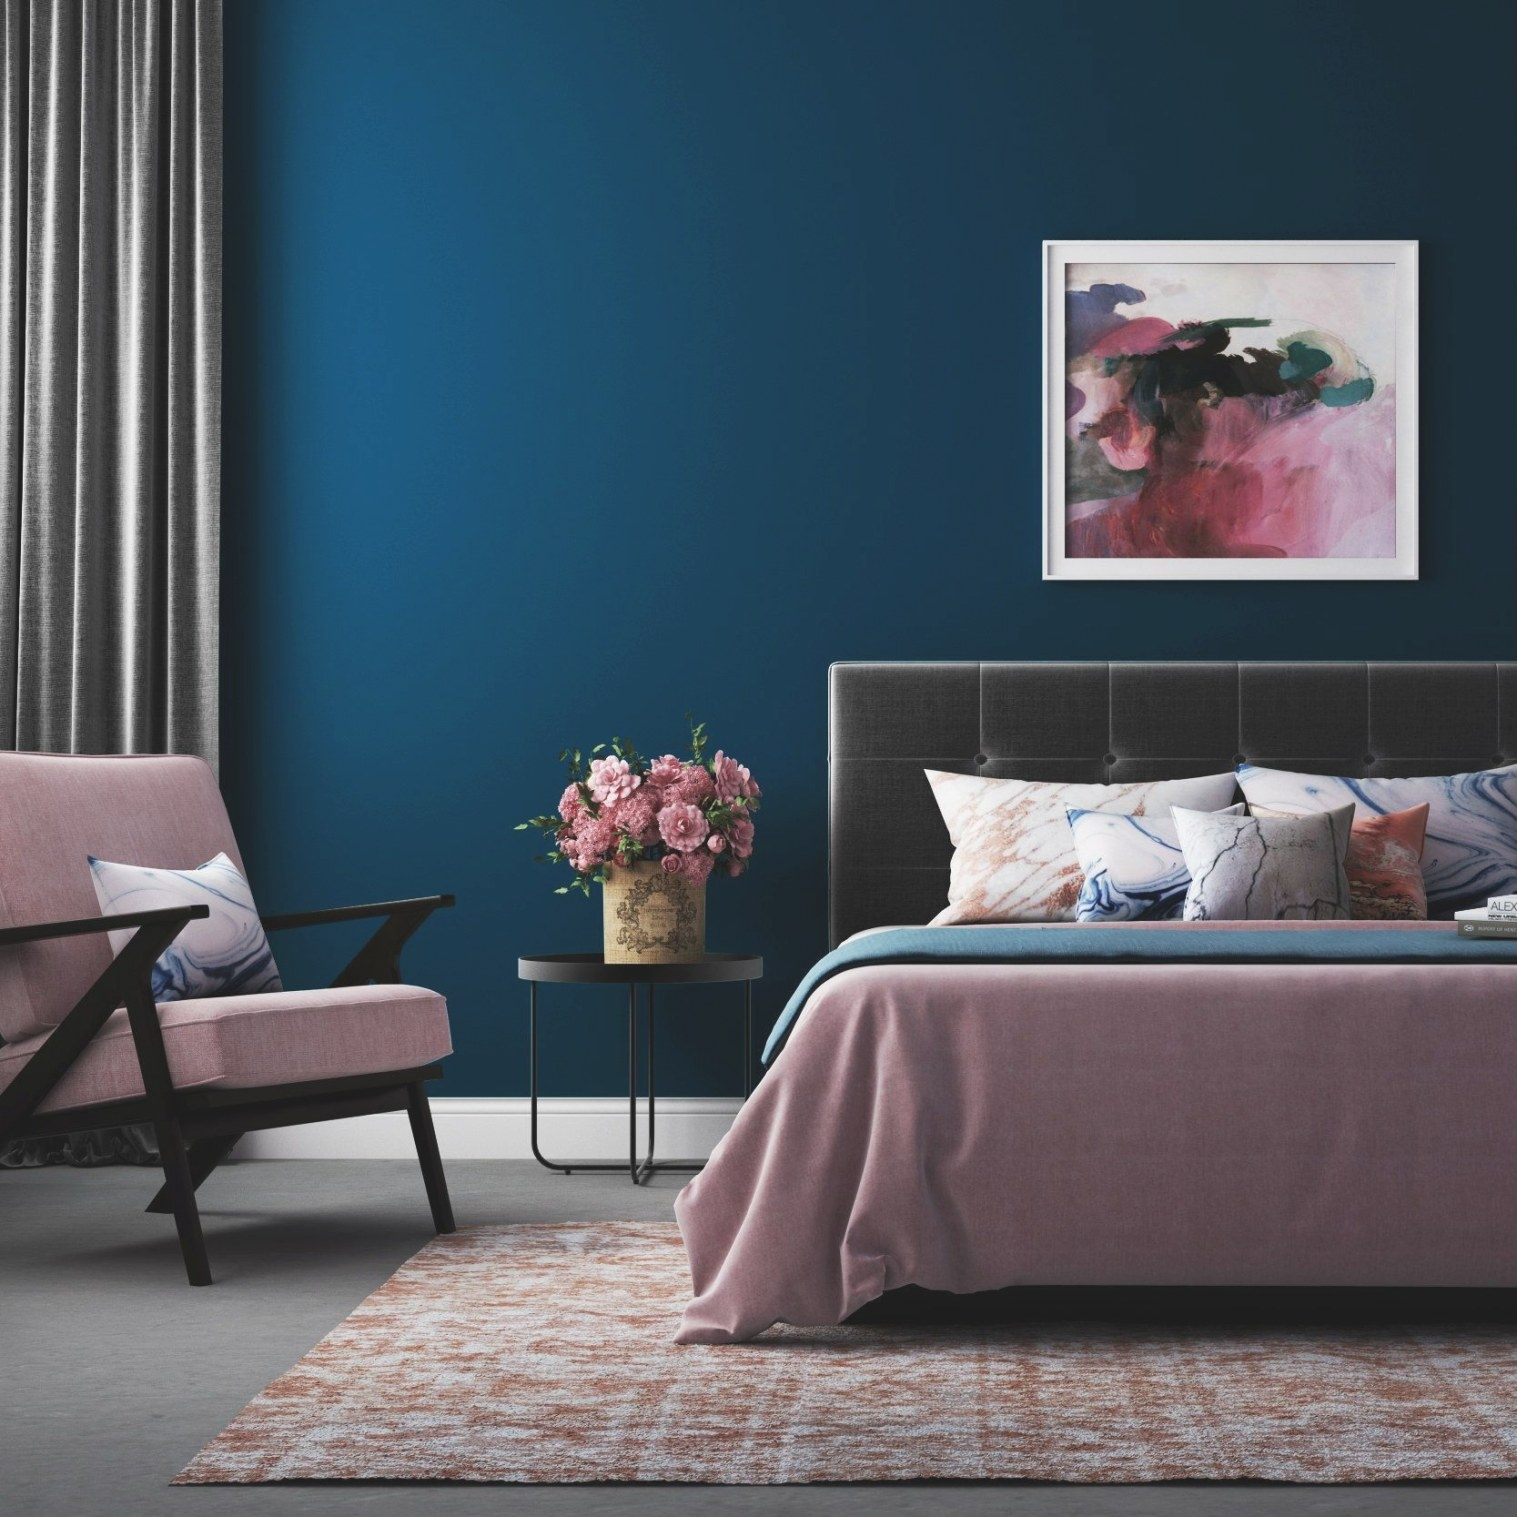 Embellish Your Bedroom With The Best Paint Color System As within What Is The Most Relaxing Color For A Bedroom